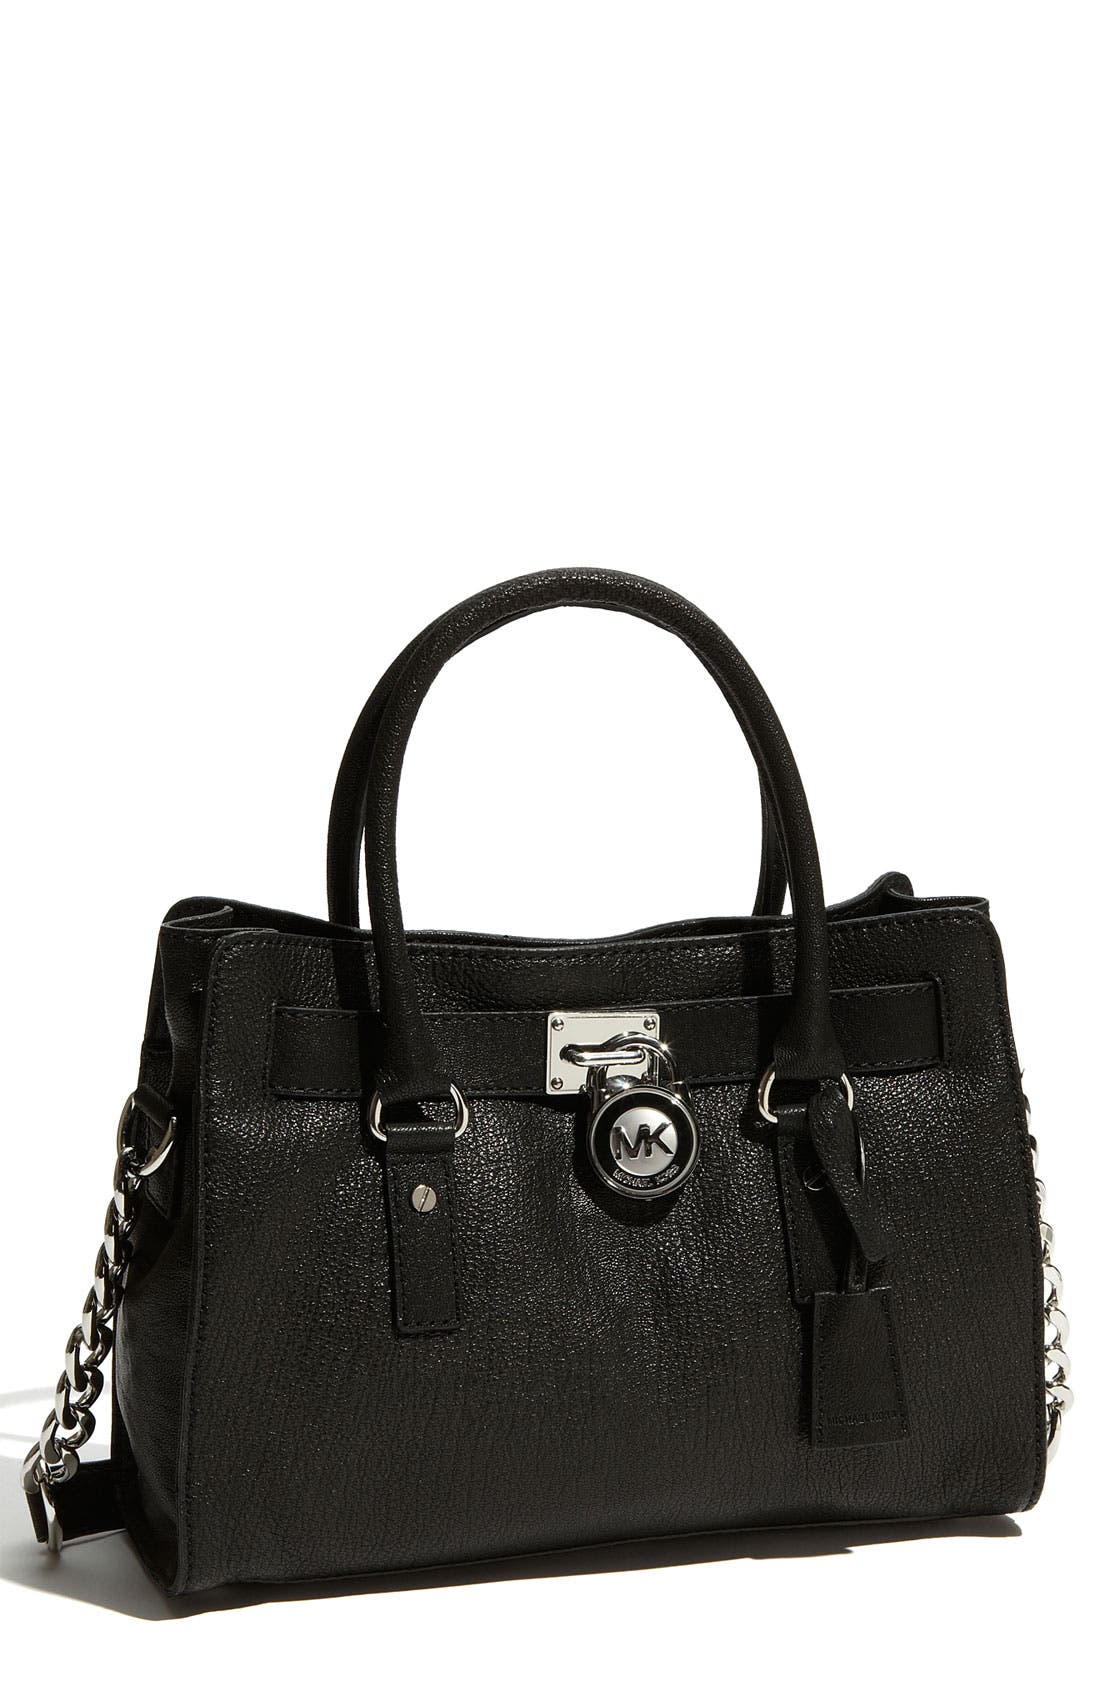 Alternate Image 1 Selected - MICHAEL Michael Kors 'Hamilton Chain' Leather Tote